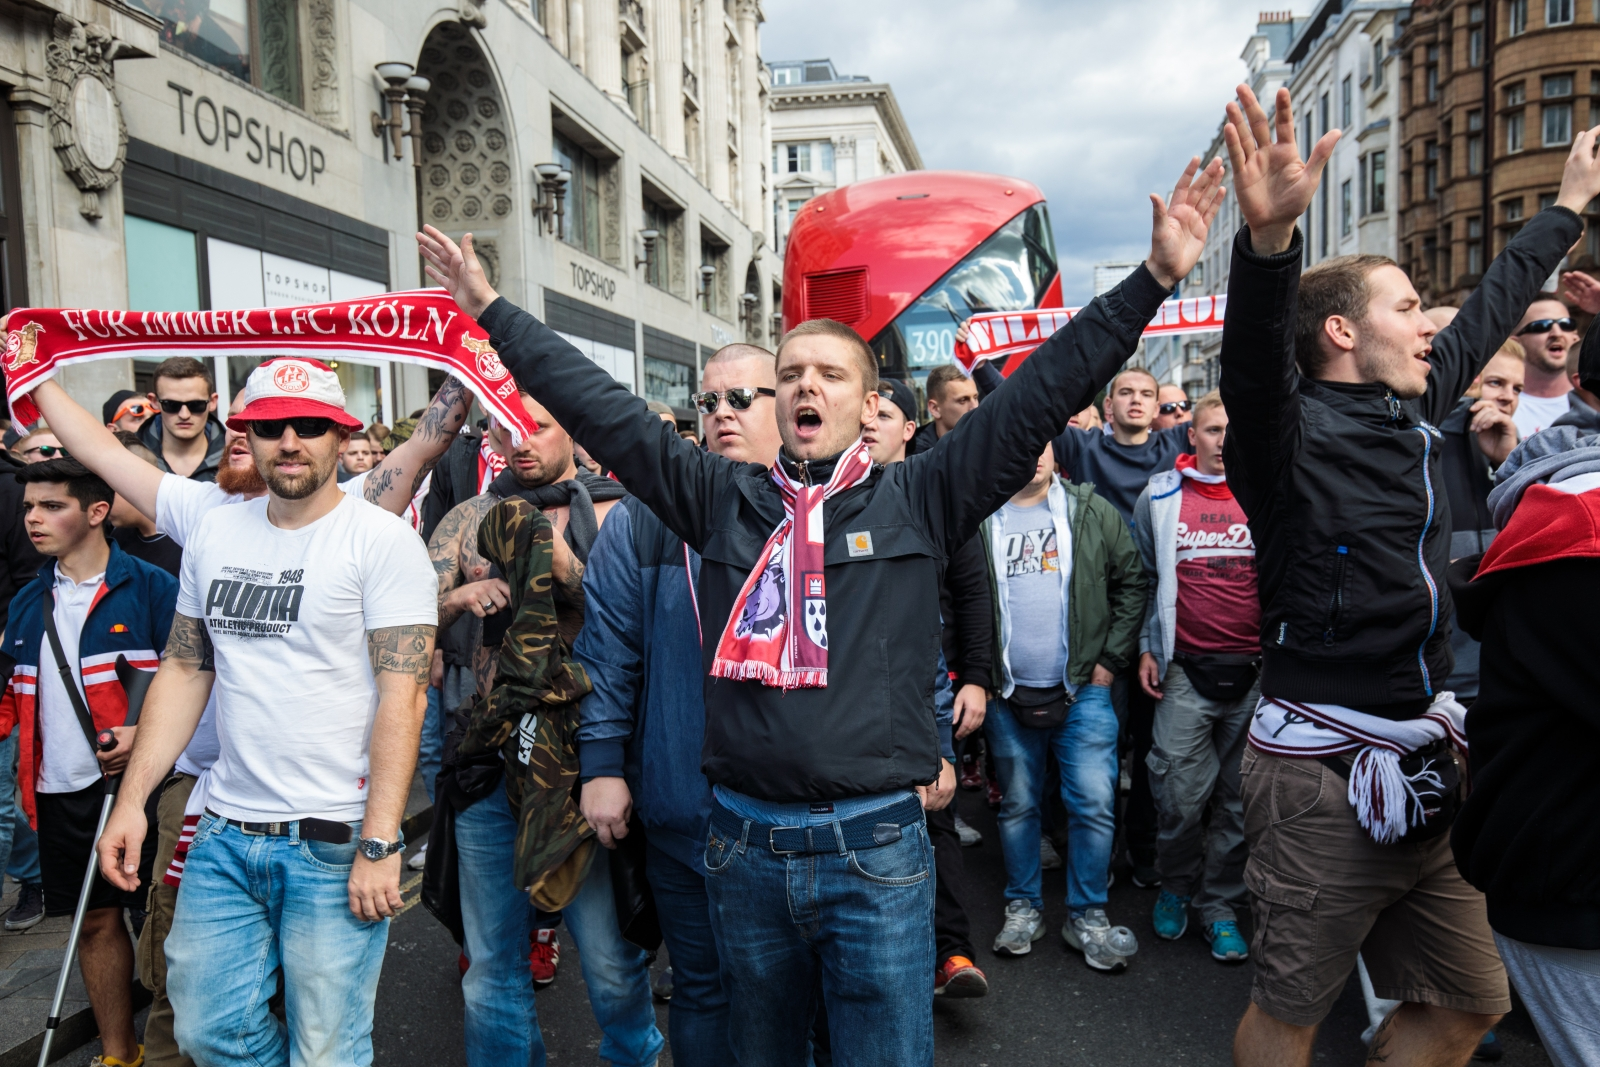 FC Köln fans storm London streets in spectacular video